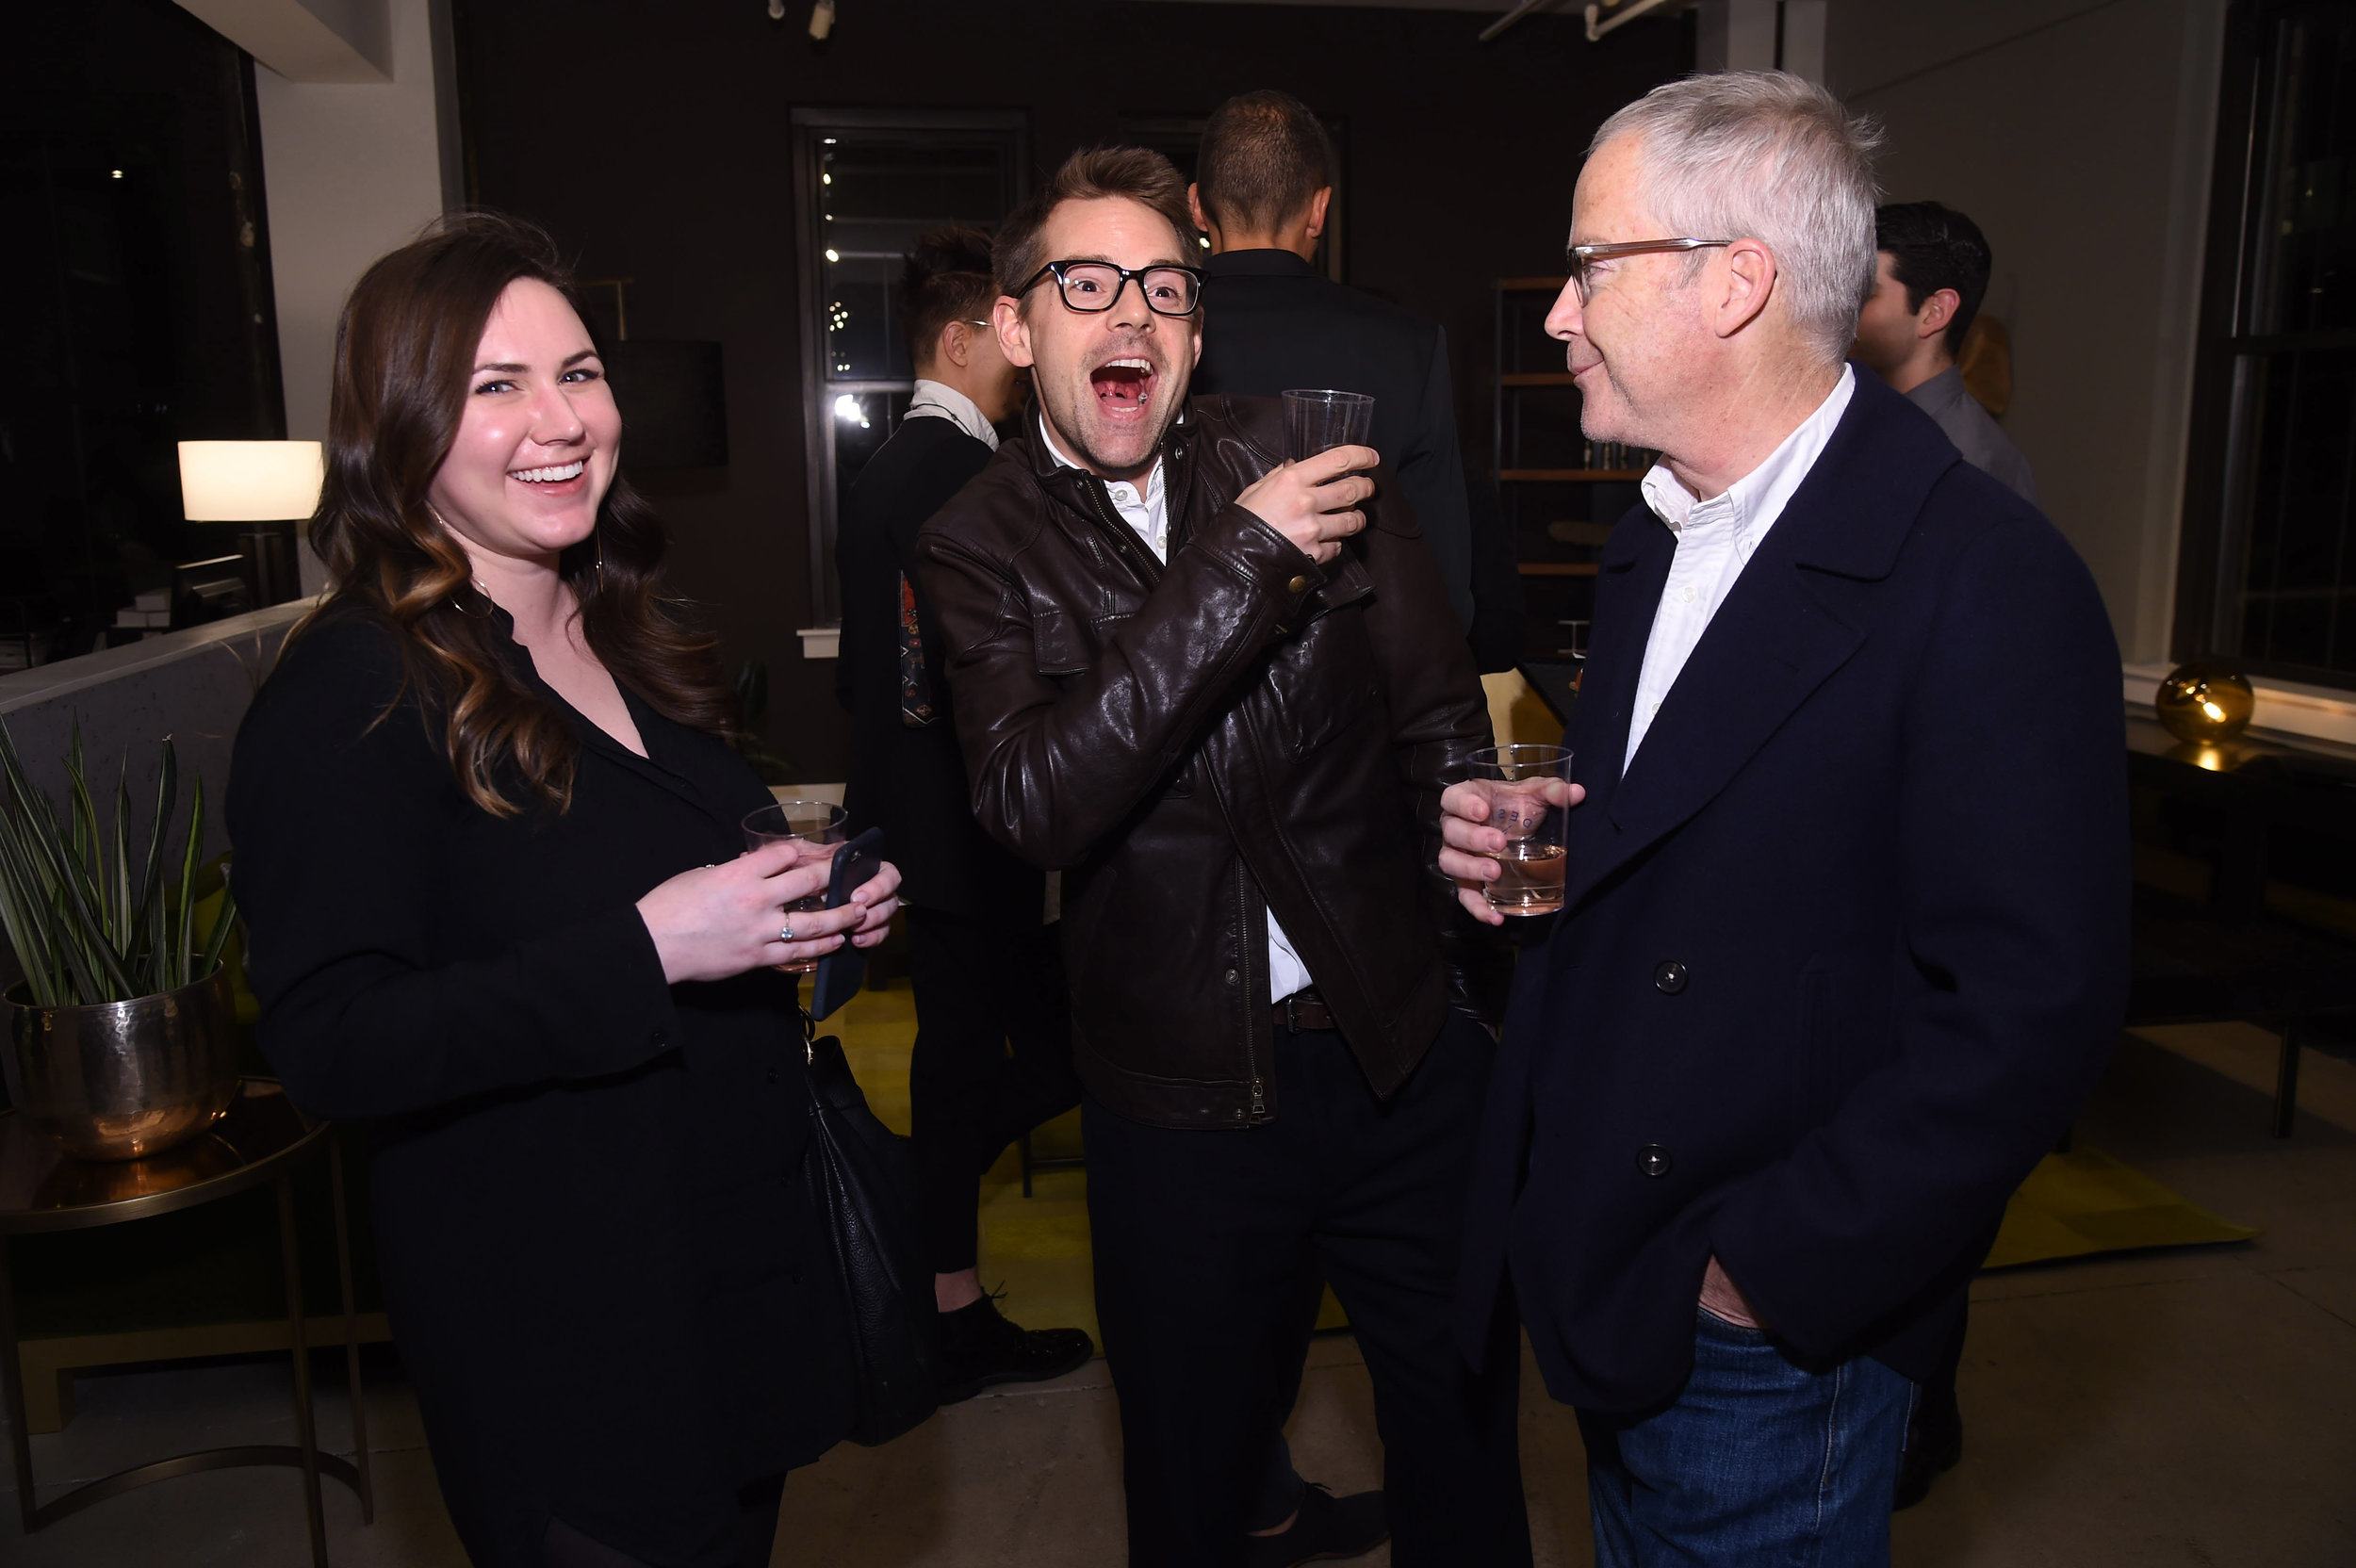 design-on-a-dime-nyc-2017-kick-off-party_32519720374_o.jpg